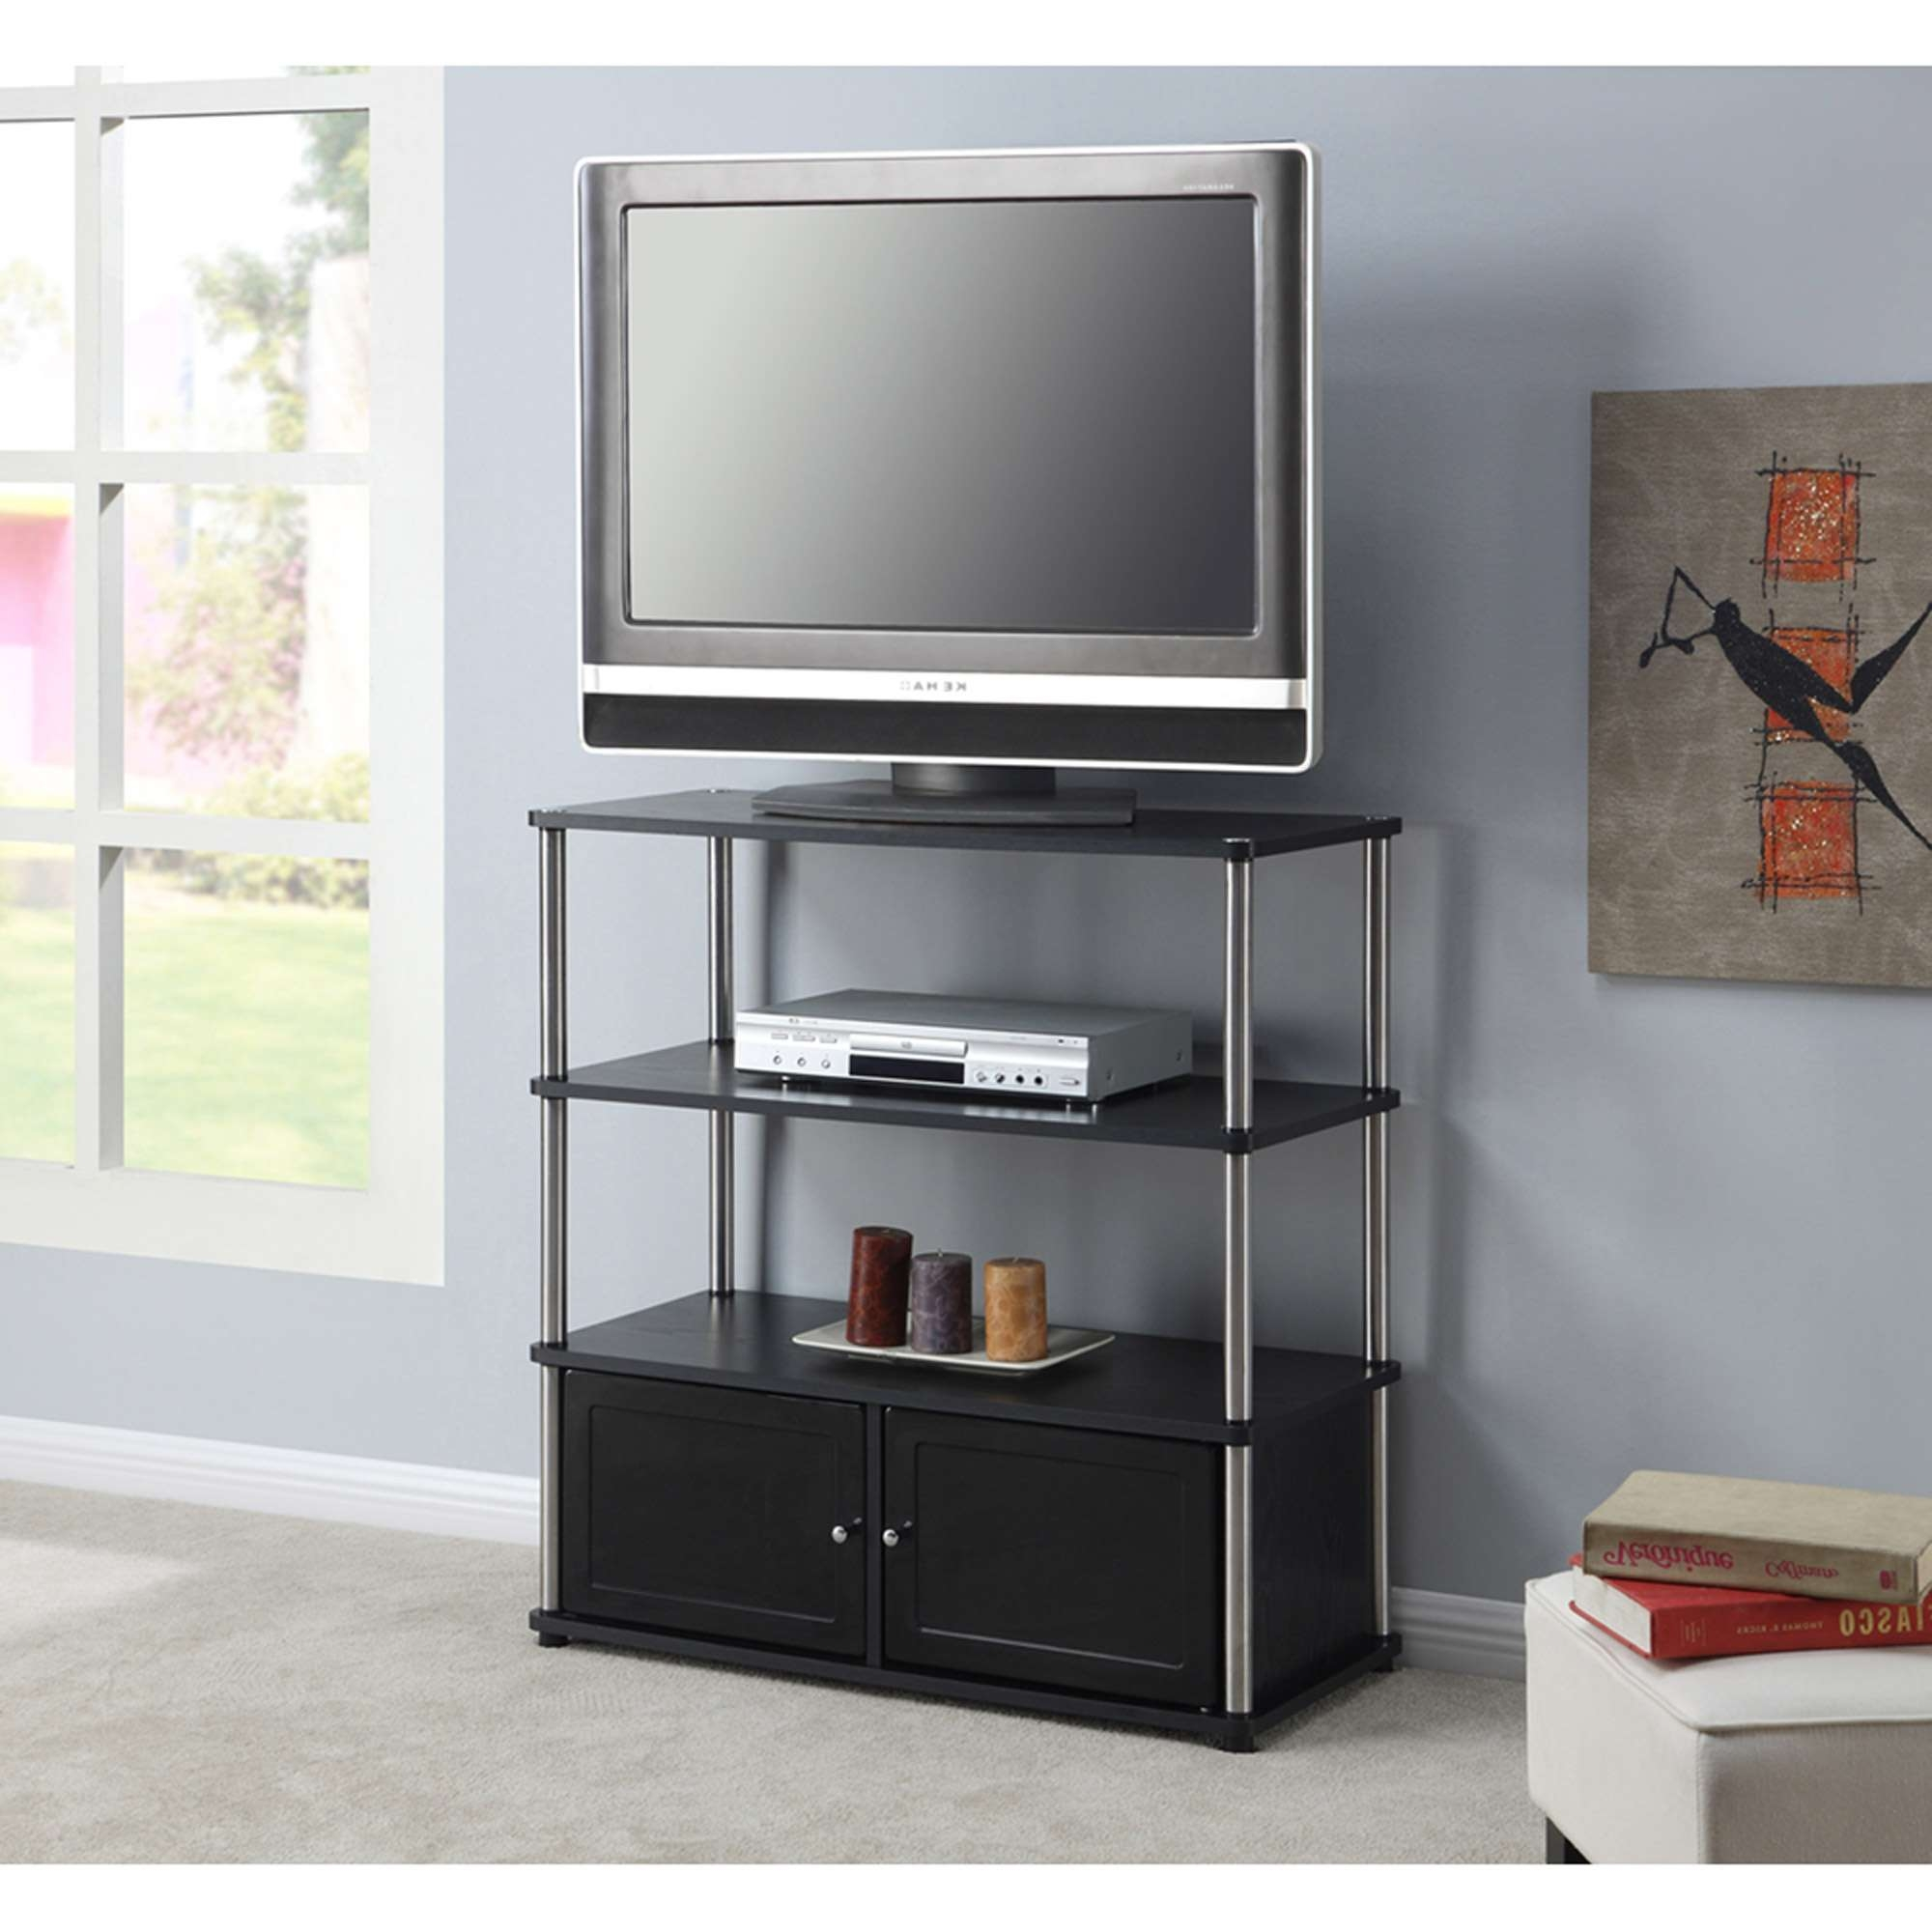 Tv Stands Inspiring Stand With Mount And Drawers Design Altra In Tv Stands Tall Narrow (View 13 of 15)